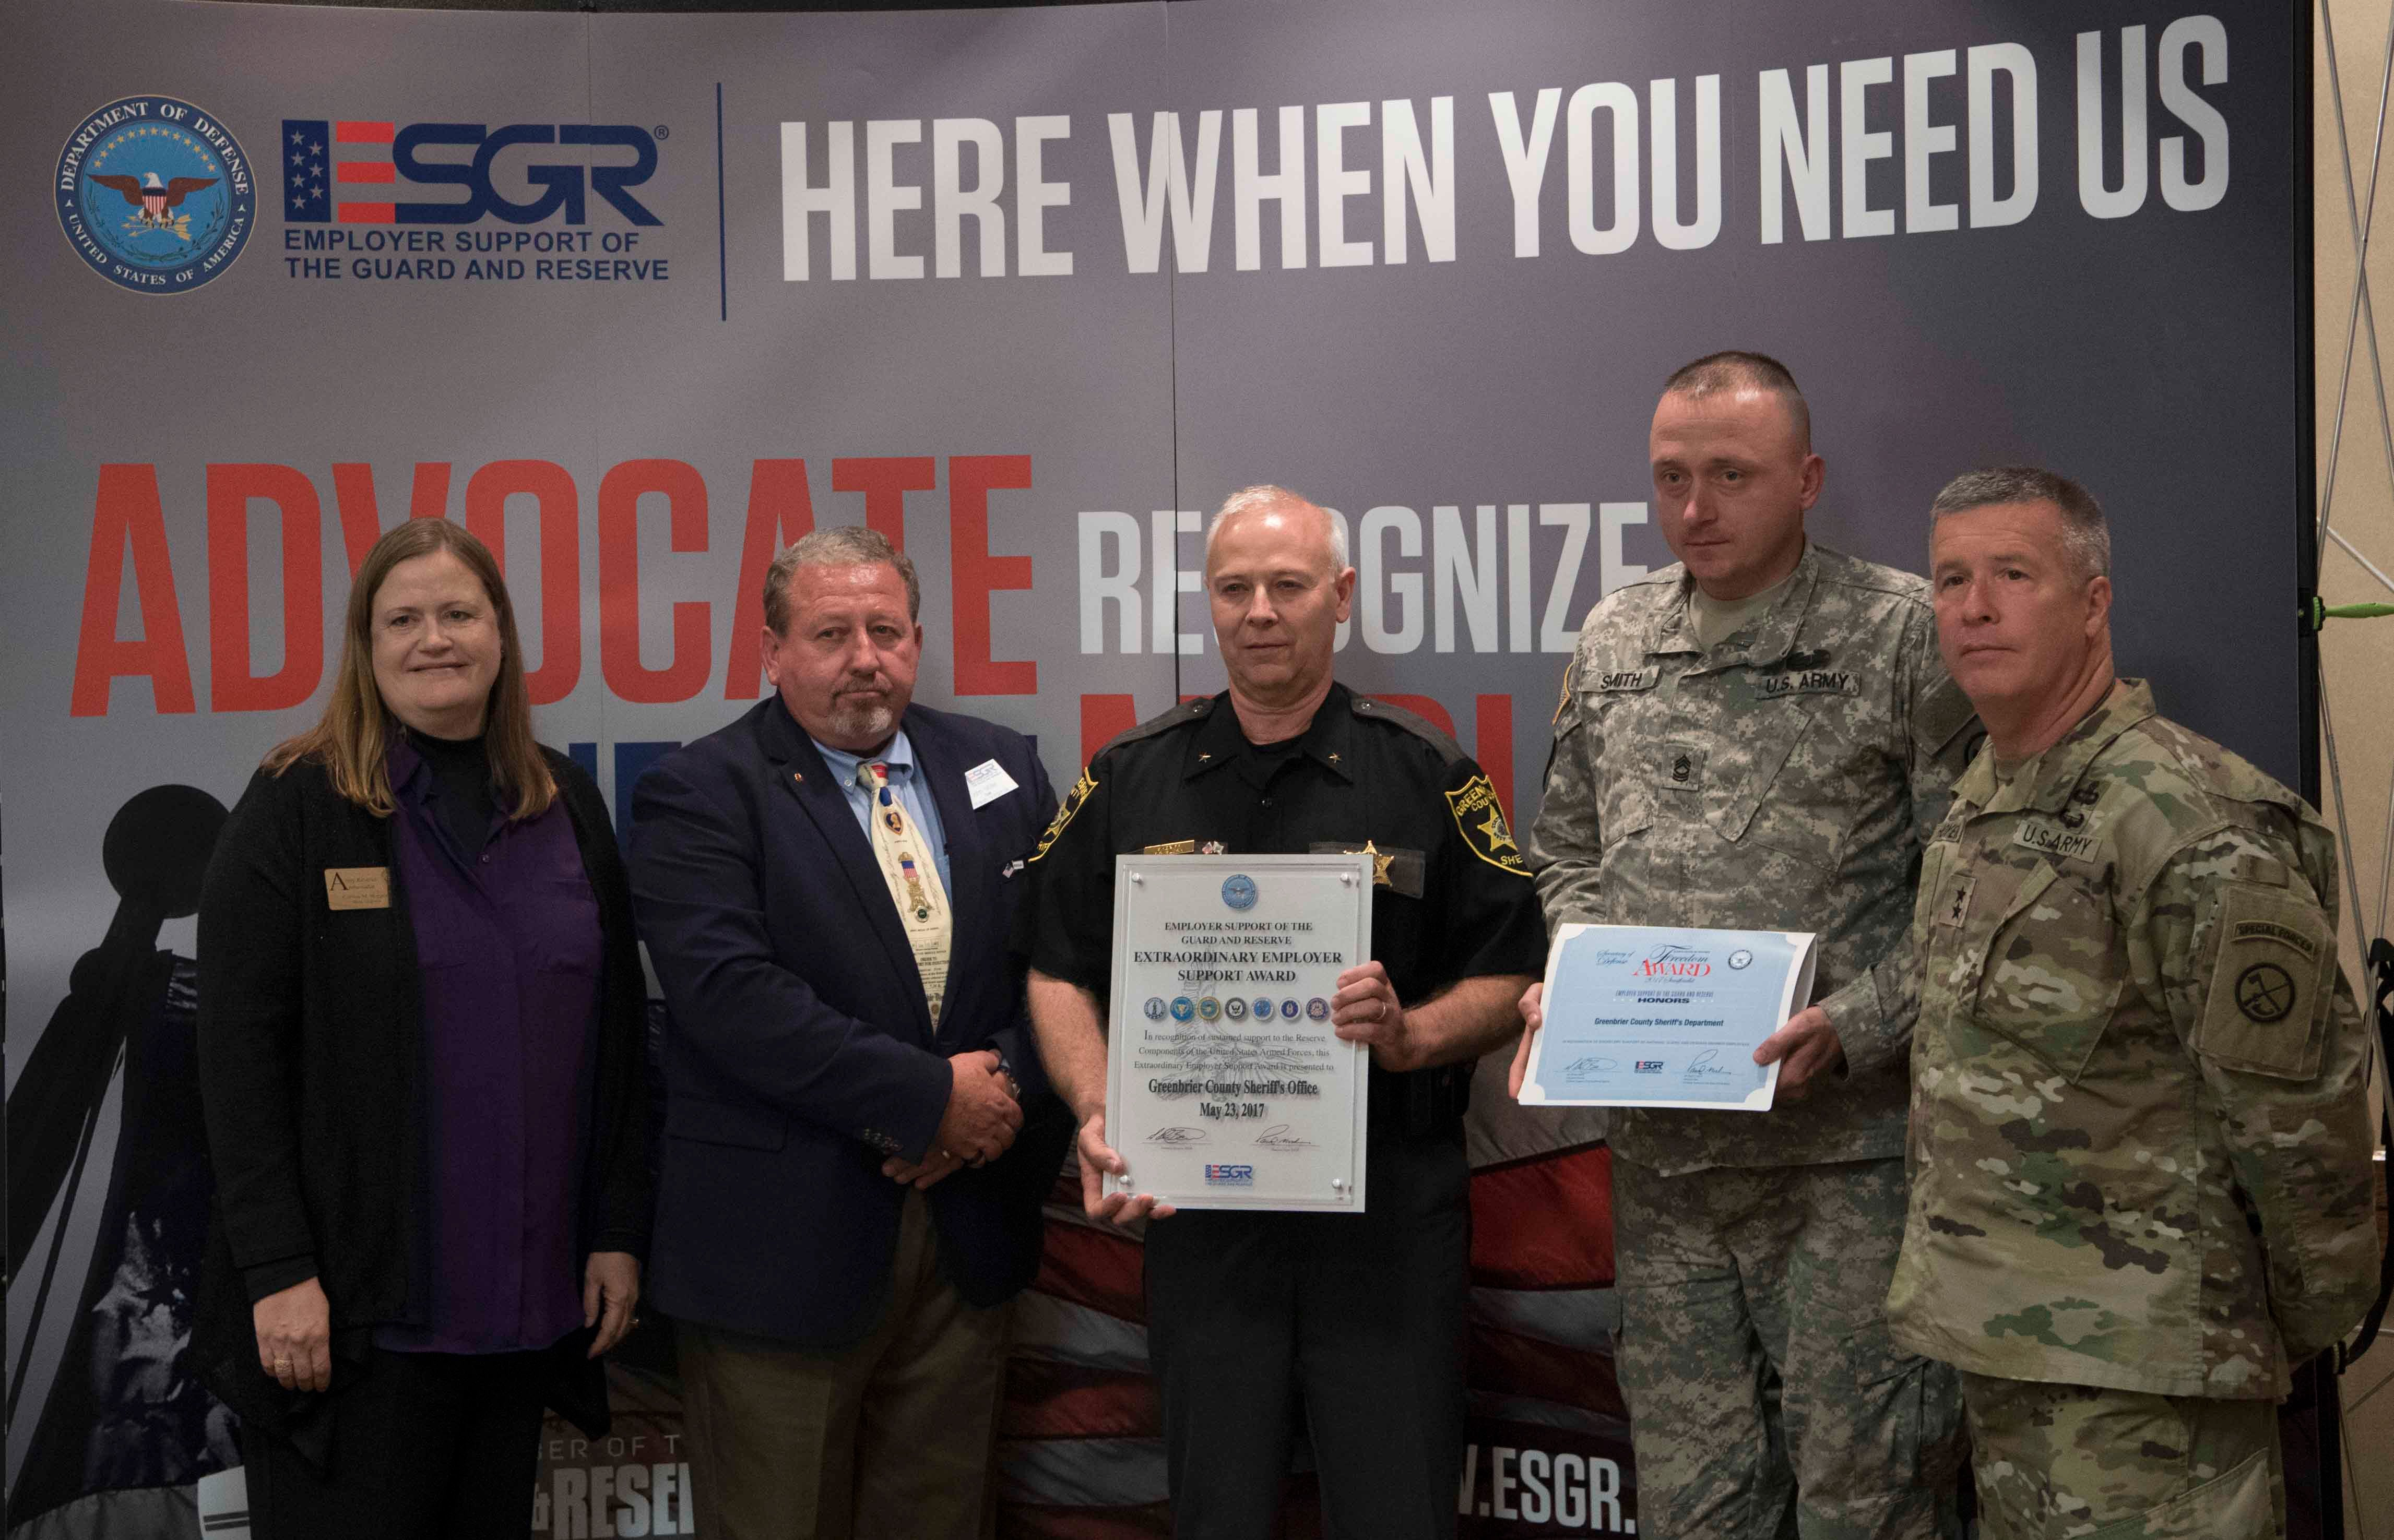 Left to Right, Corrina Boggess ( Army Reserve Ambassador for WV), John Miller (ESGR State Chairman), Sheriff Sloan, Master Sergeant Charles Smith and Major General James Hoyer